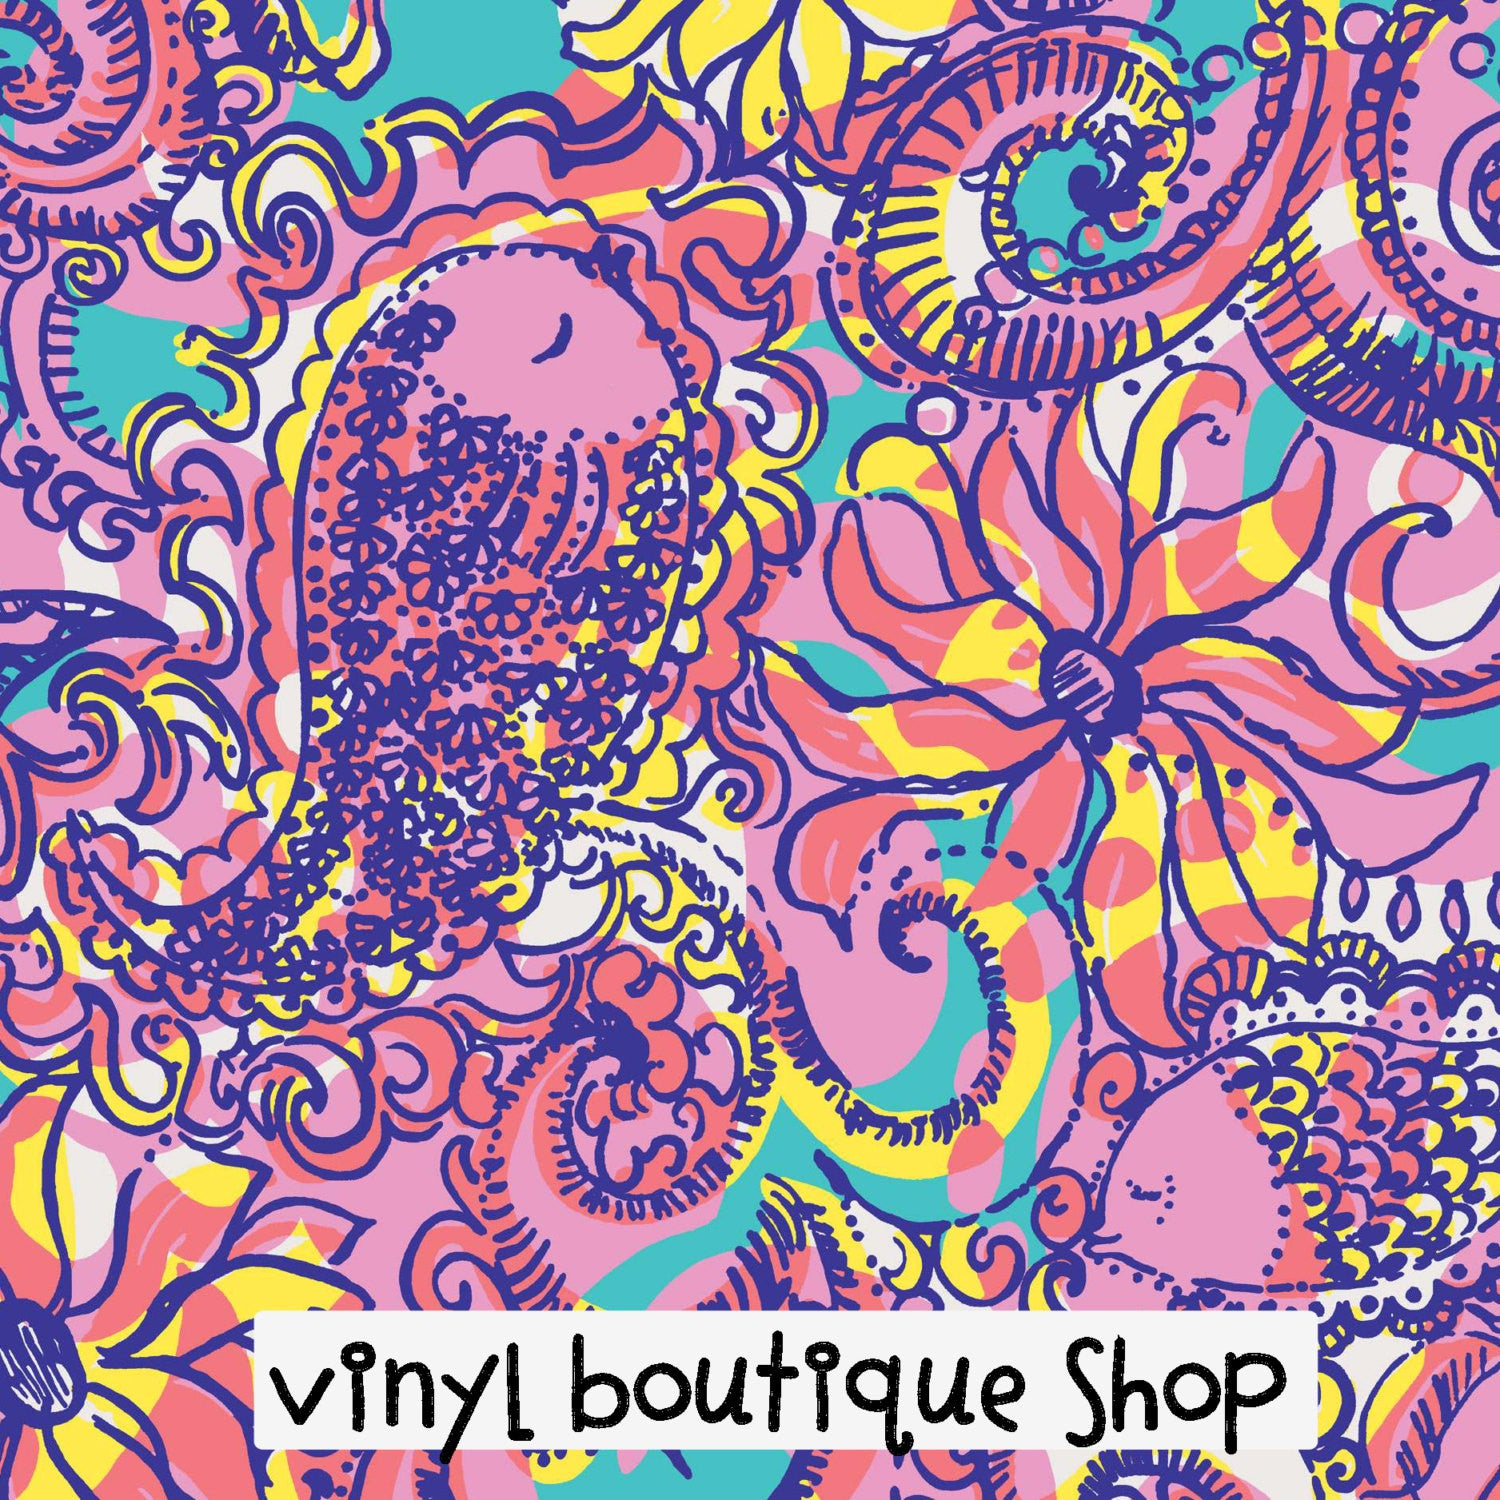 Sea And Be Seen Lilly Inspired Printed Patterned Craft Vinyl - Vinyl Boutique Shop